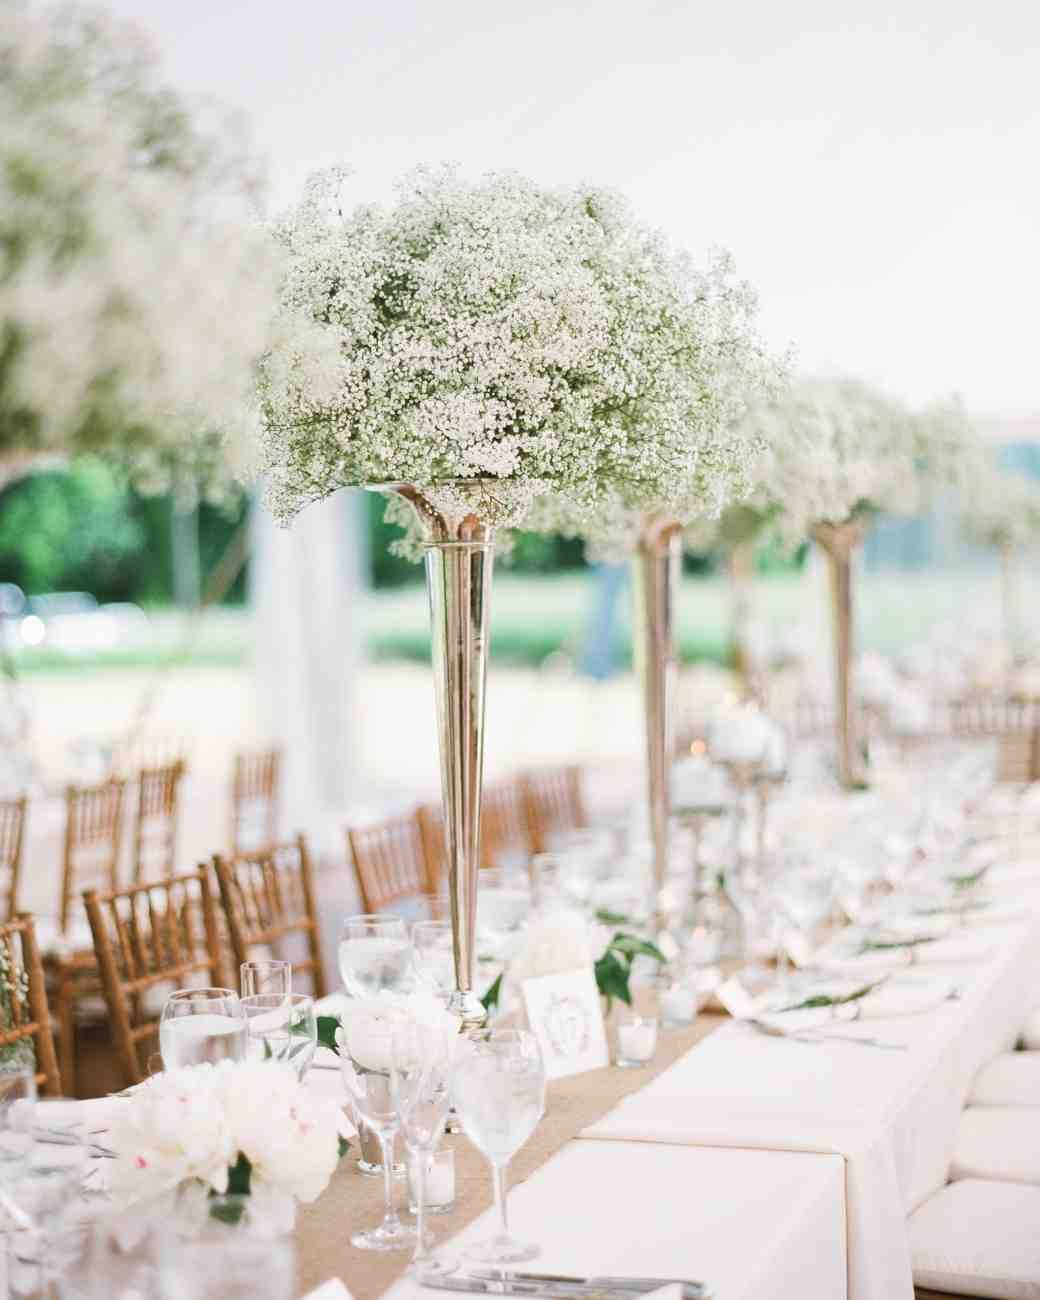 Wedding Decorations Cheap: Affordable Wedding Centerpieces That Still Look Elevated